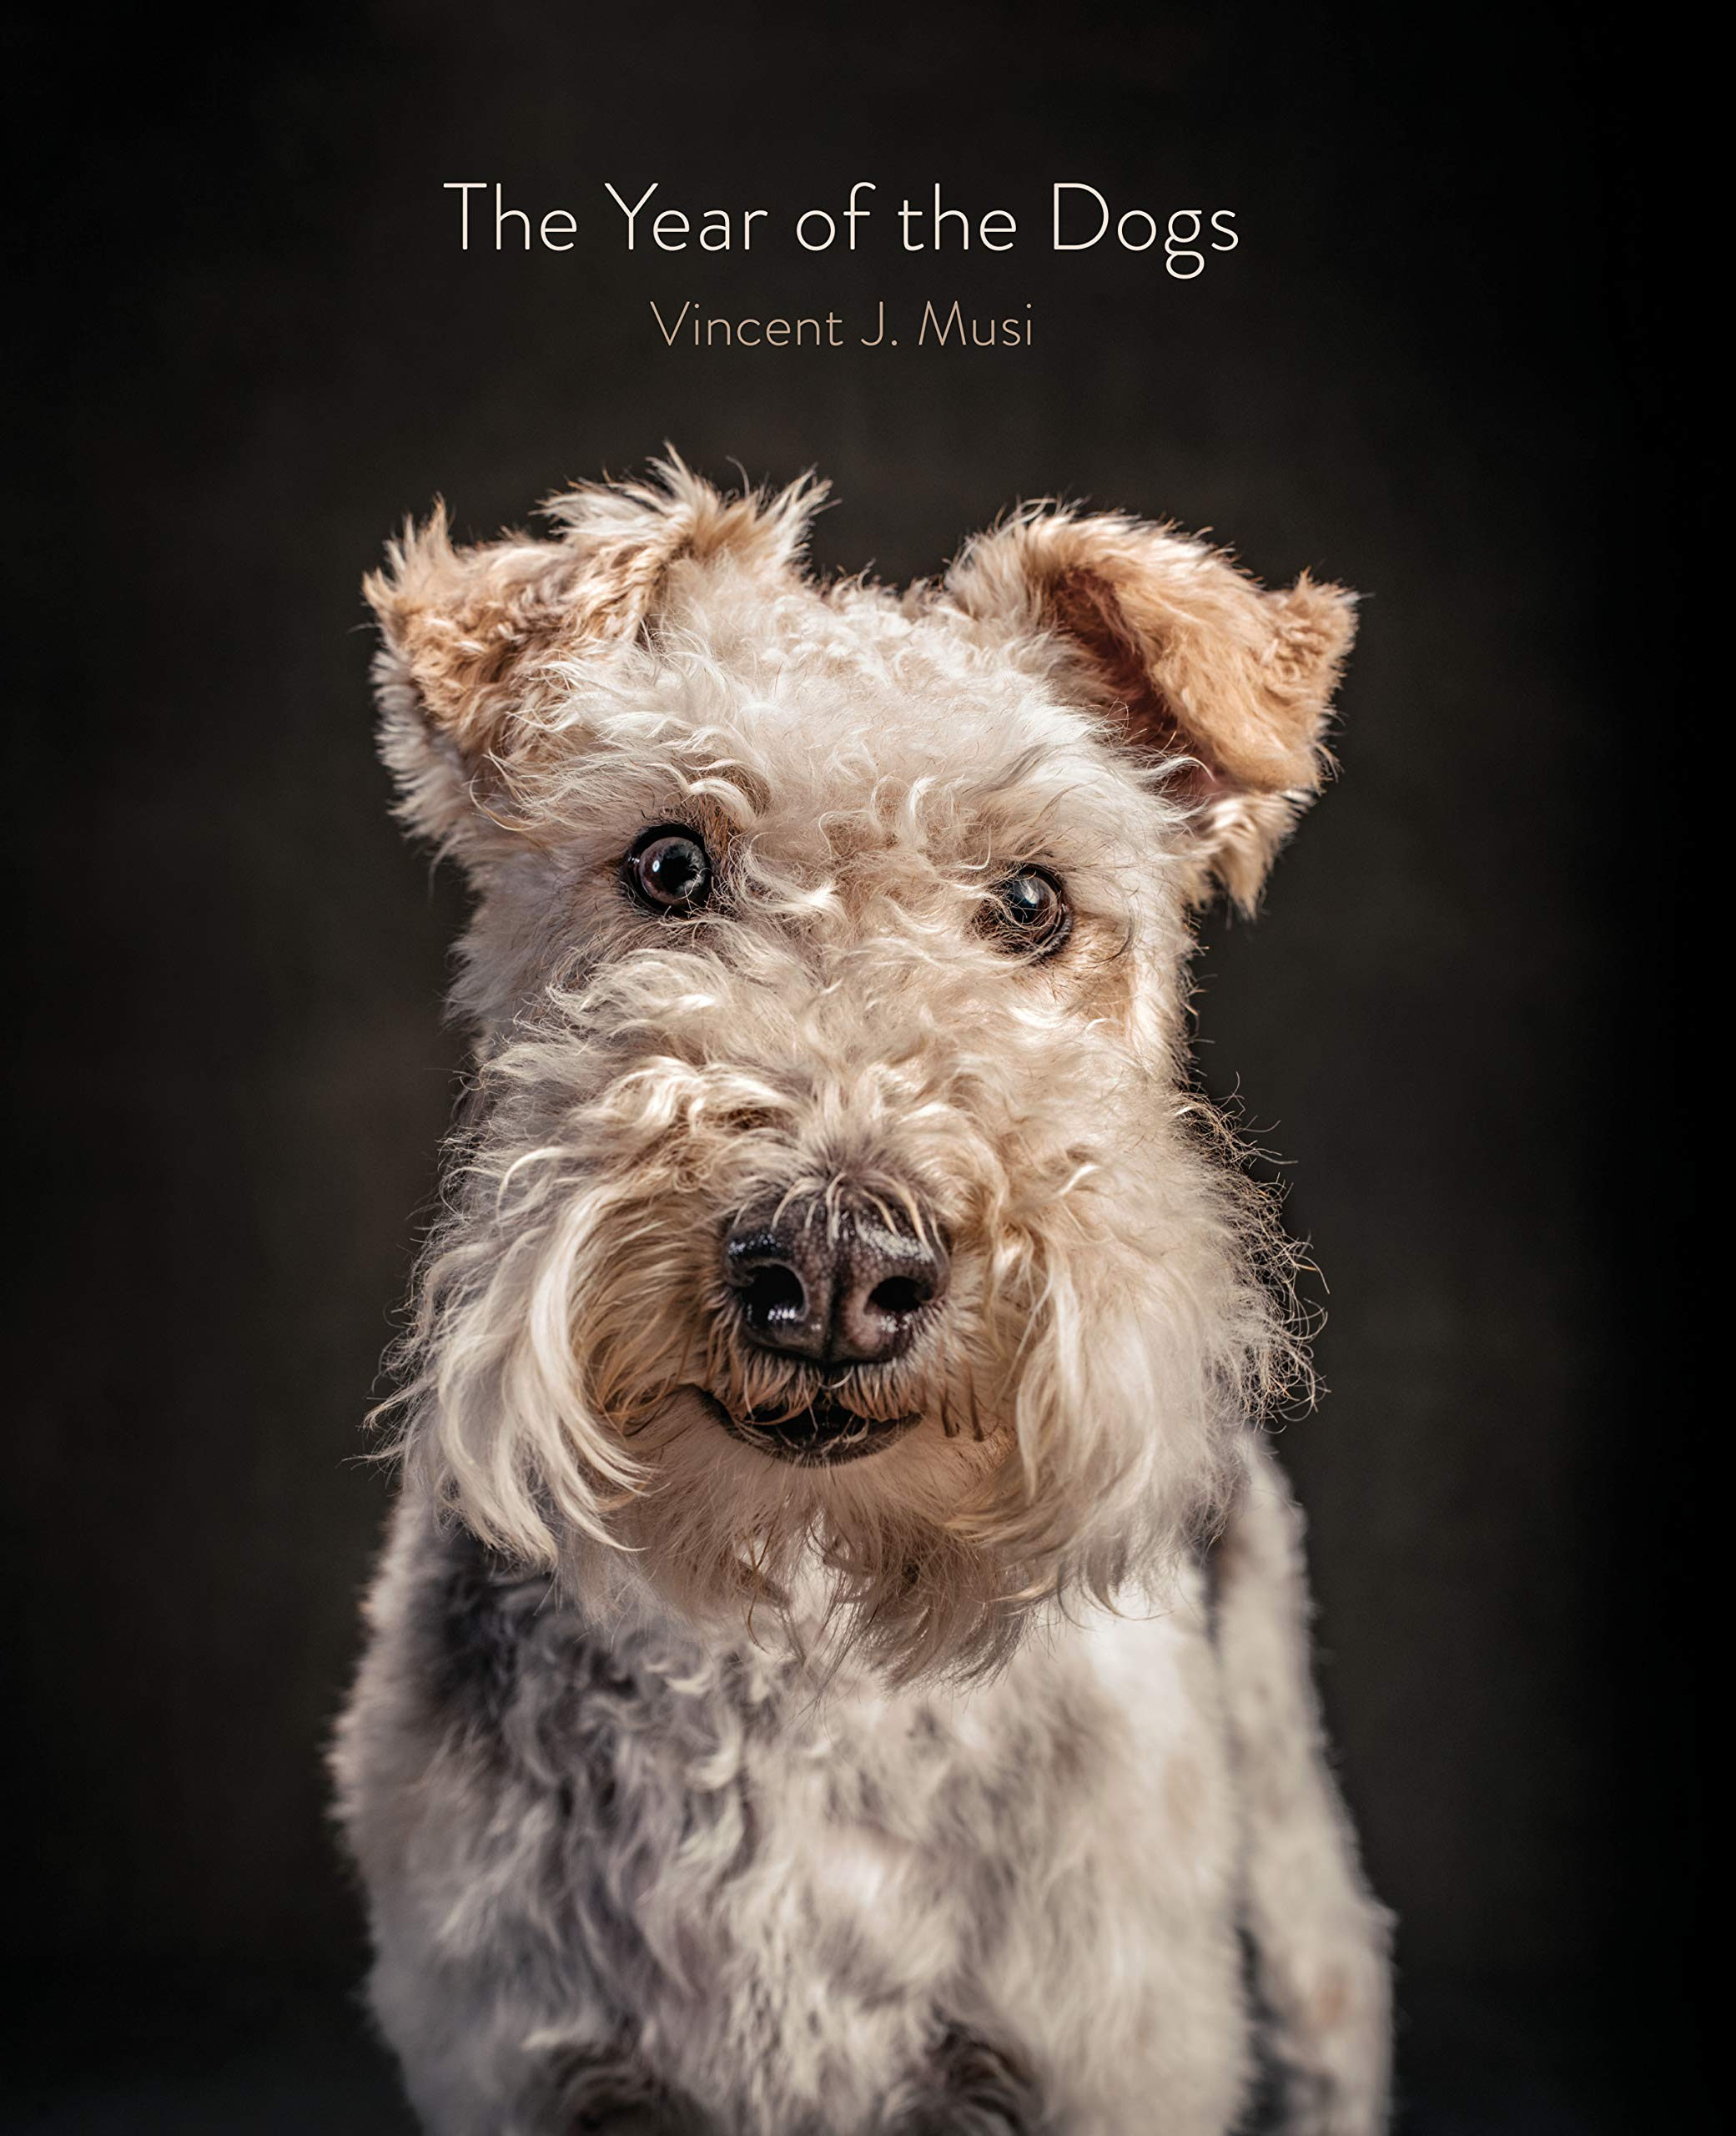 81%2BtaSx23yLthe-year-of-dogs-hardcover